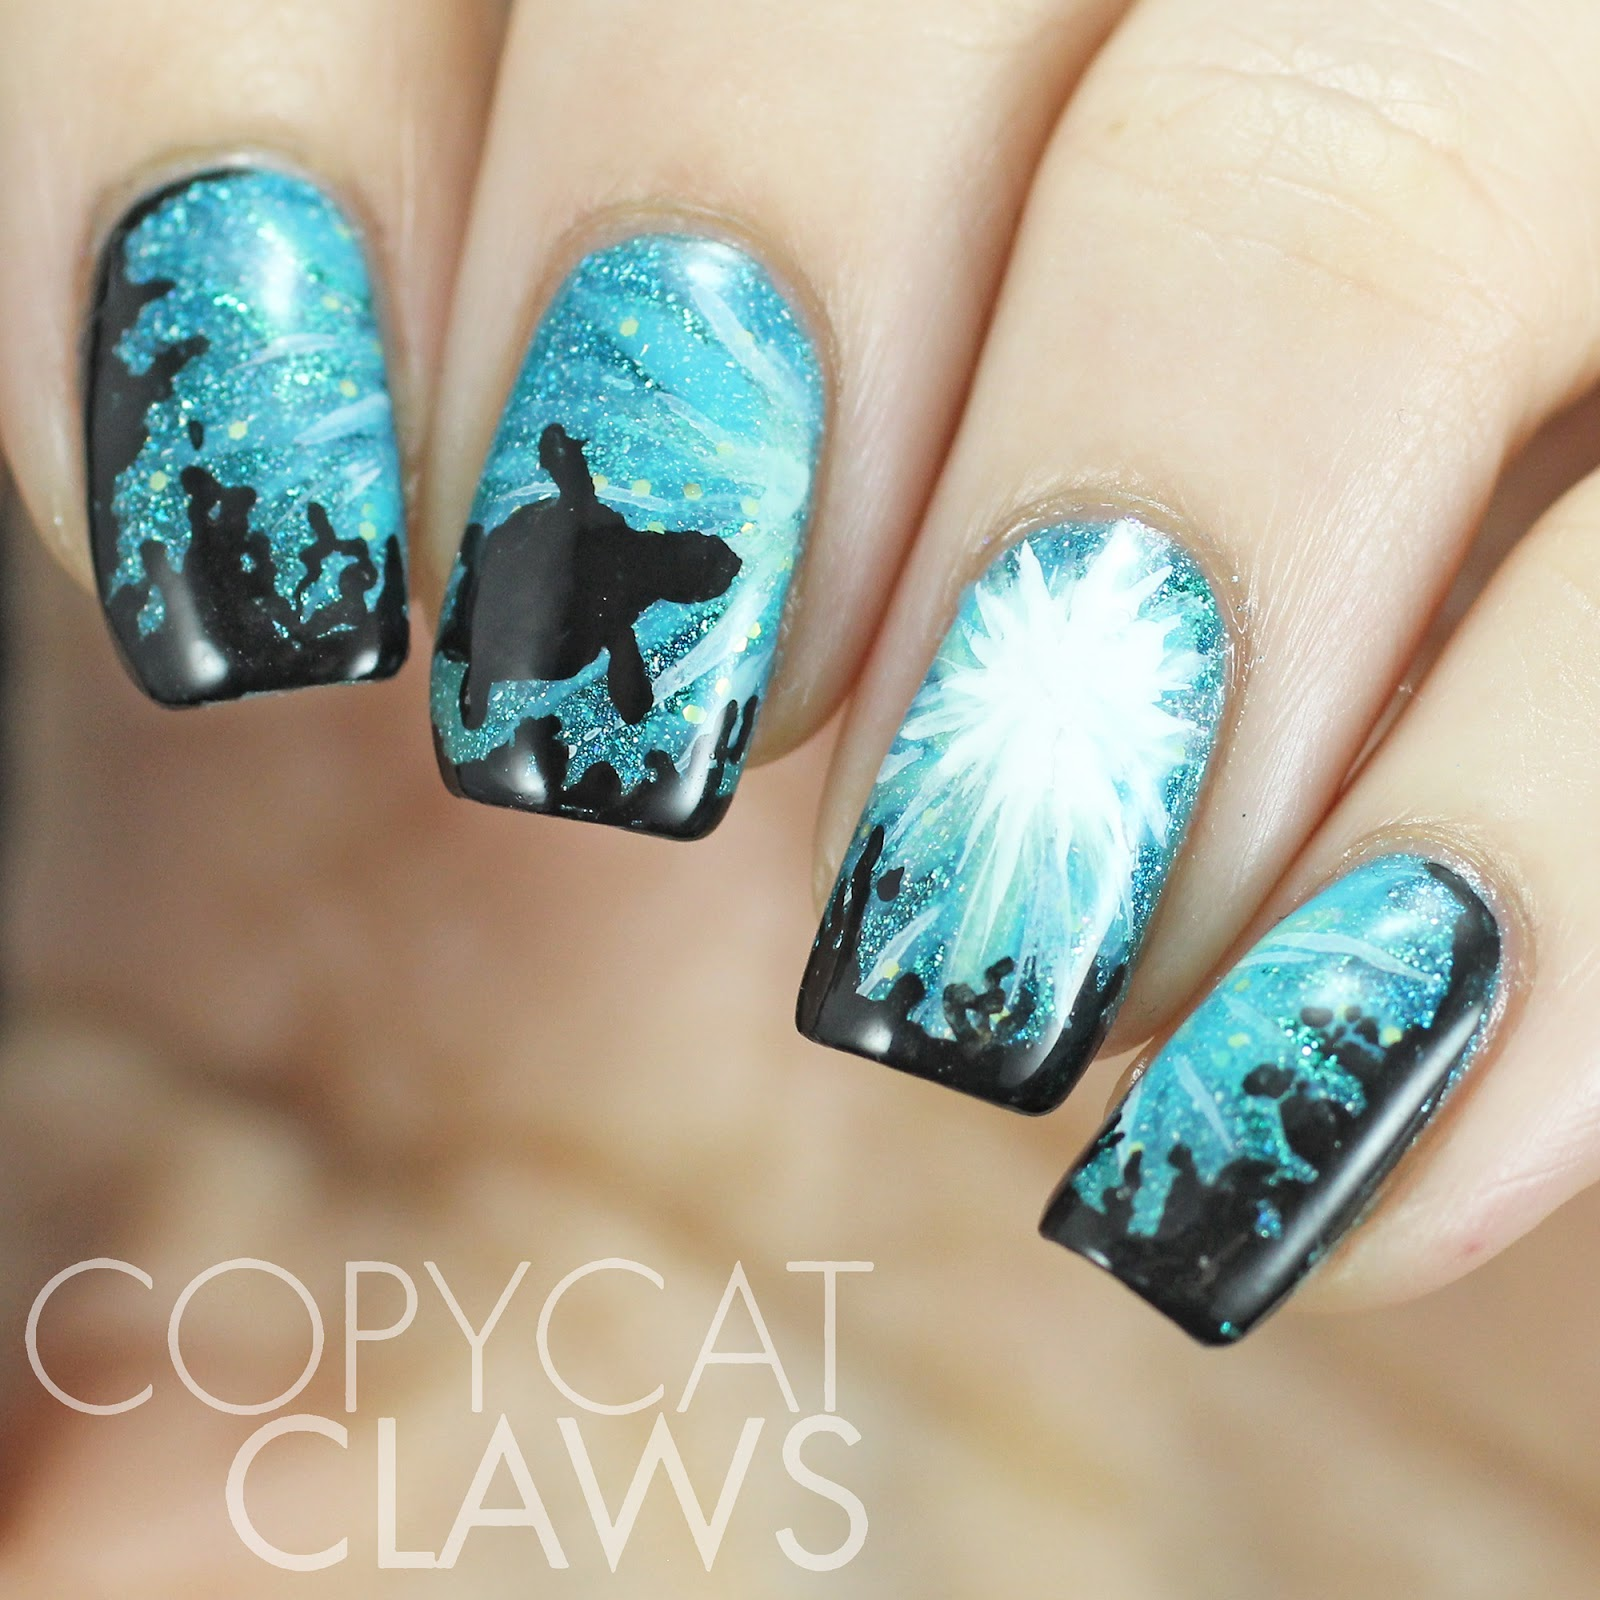 Copycat claws the digit al dozen does nature day 1 sea turtle i tried to add variety with a few other picture polishes sea jewel fools gold honeymoon and tiffany the black and white parts are acrylic paint prinsesfo Gallery